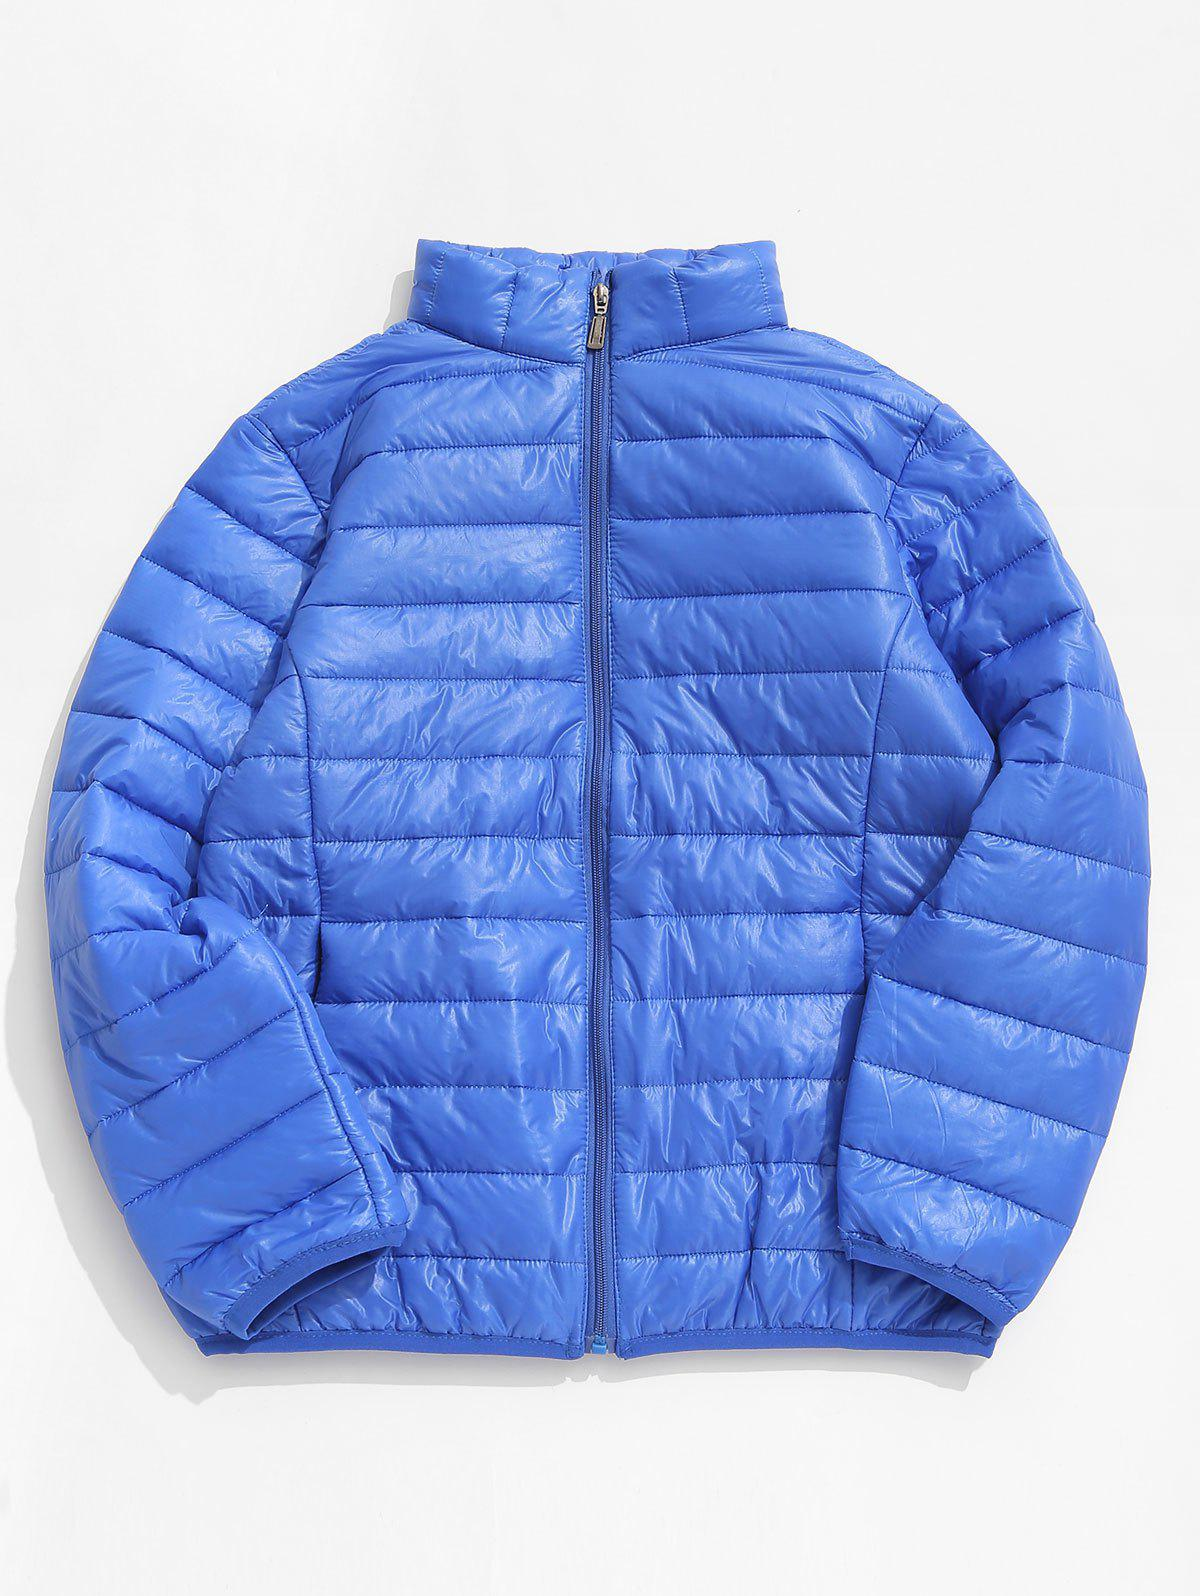 Affordable Zip Up Solid Warm Lightweight Padded Jacket